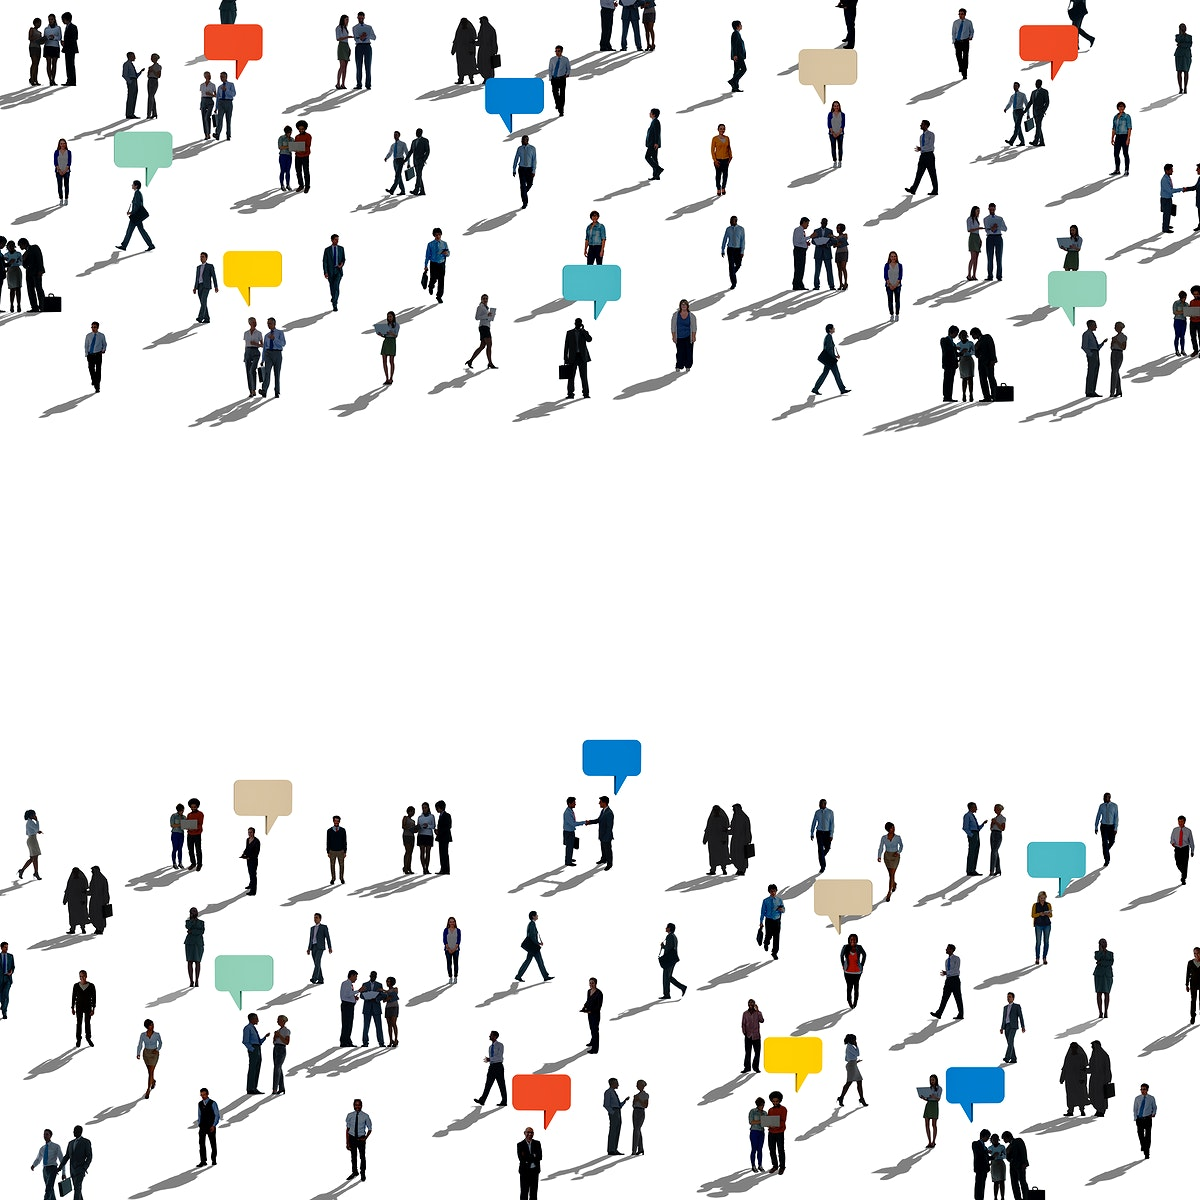 Diverse people silhouette communication connection